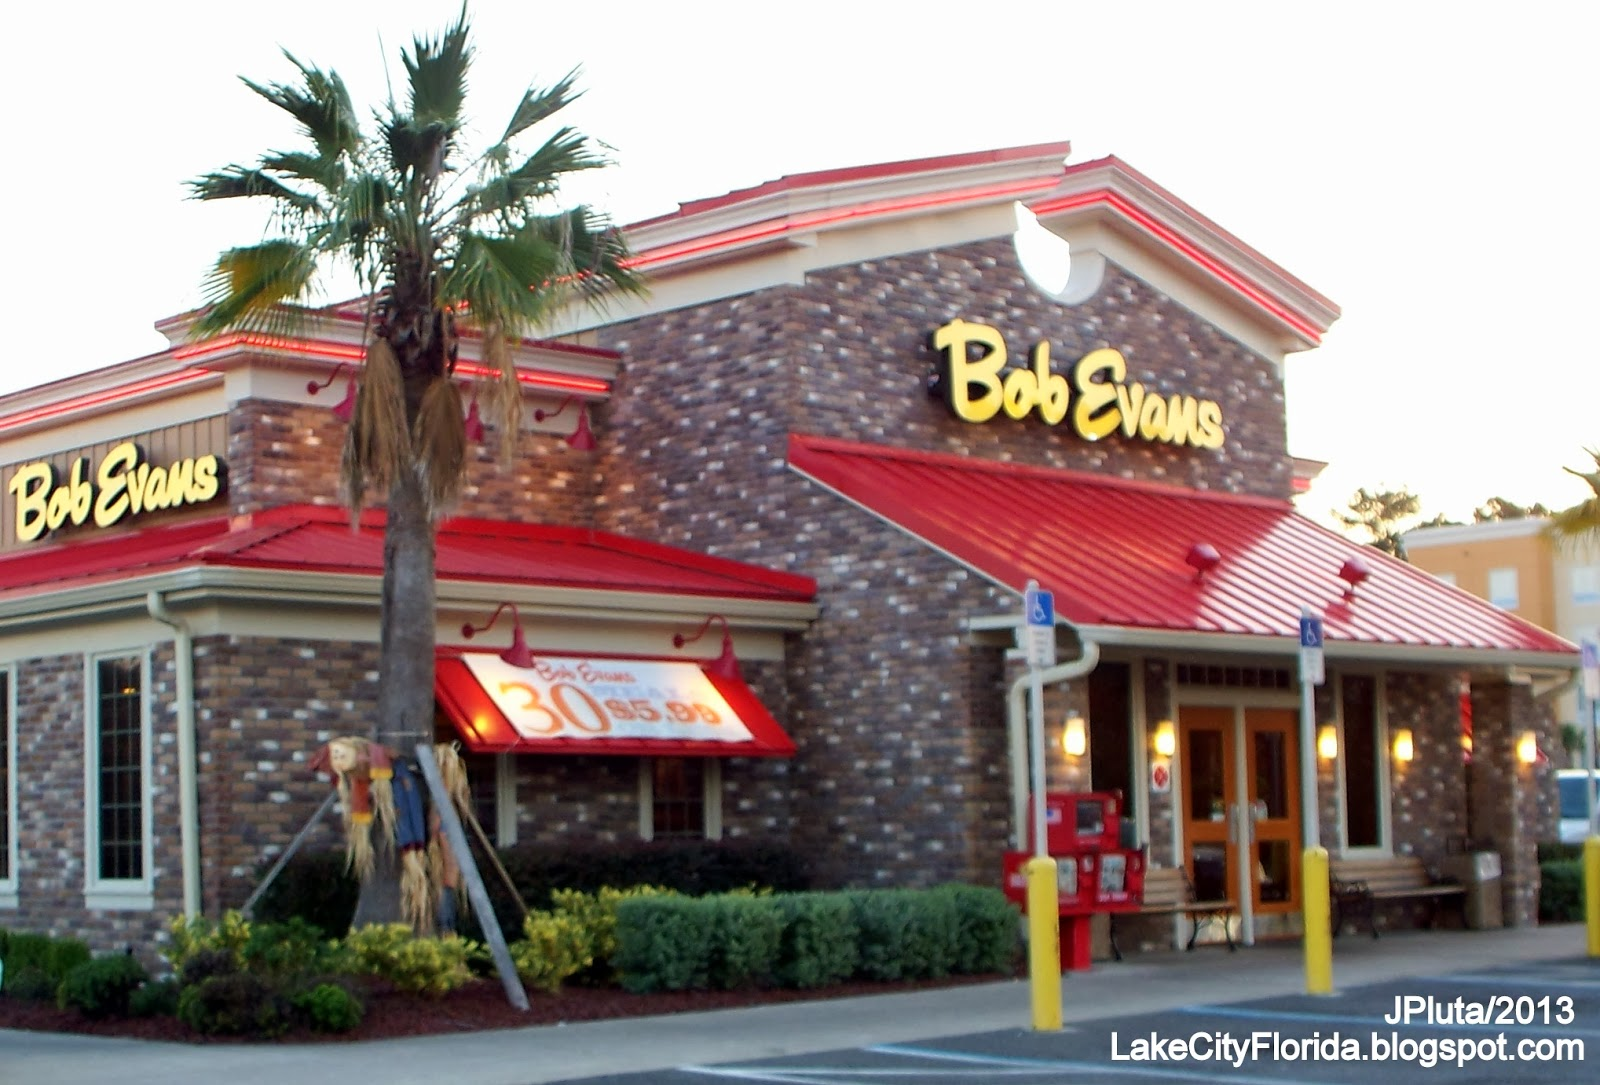 restaurant fast food menu mcdonald s dq bk hamburger pizza mexican bob evans restaurant lake city florida west us highway 90 bob evans restaurant lake city florida columbia county fla bob evans restaurant lake city